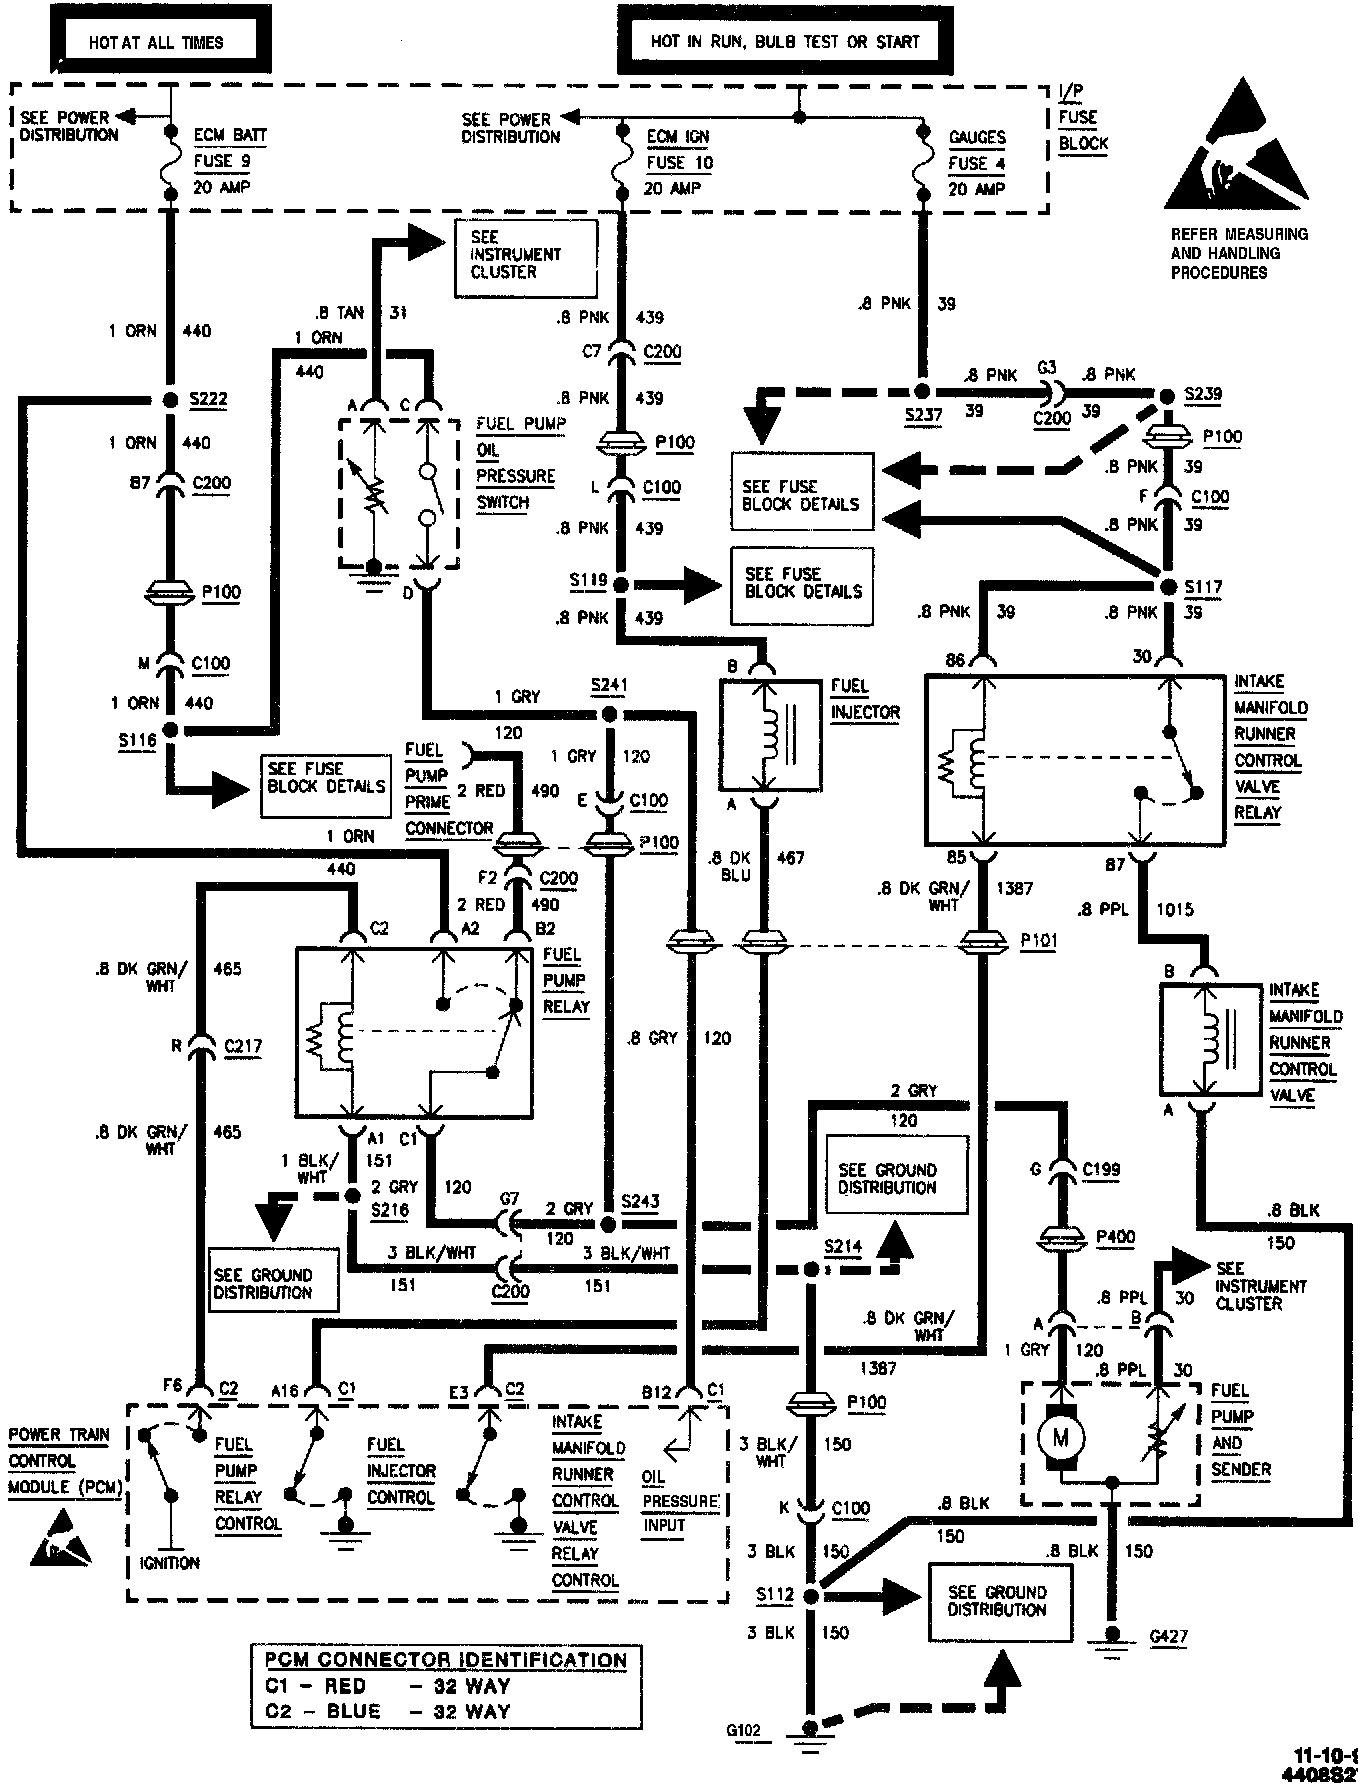 s10 wiring diagram wiring schematic diagram 1994 S10 Blazer Wiring Diagram chevy s10 wiring harness wiring diagram online s10 starter wiring diagram s10 wiring harness diagram wiring